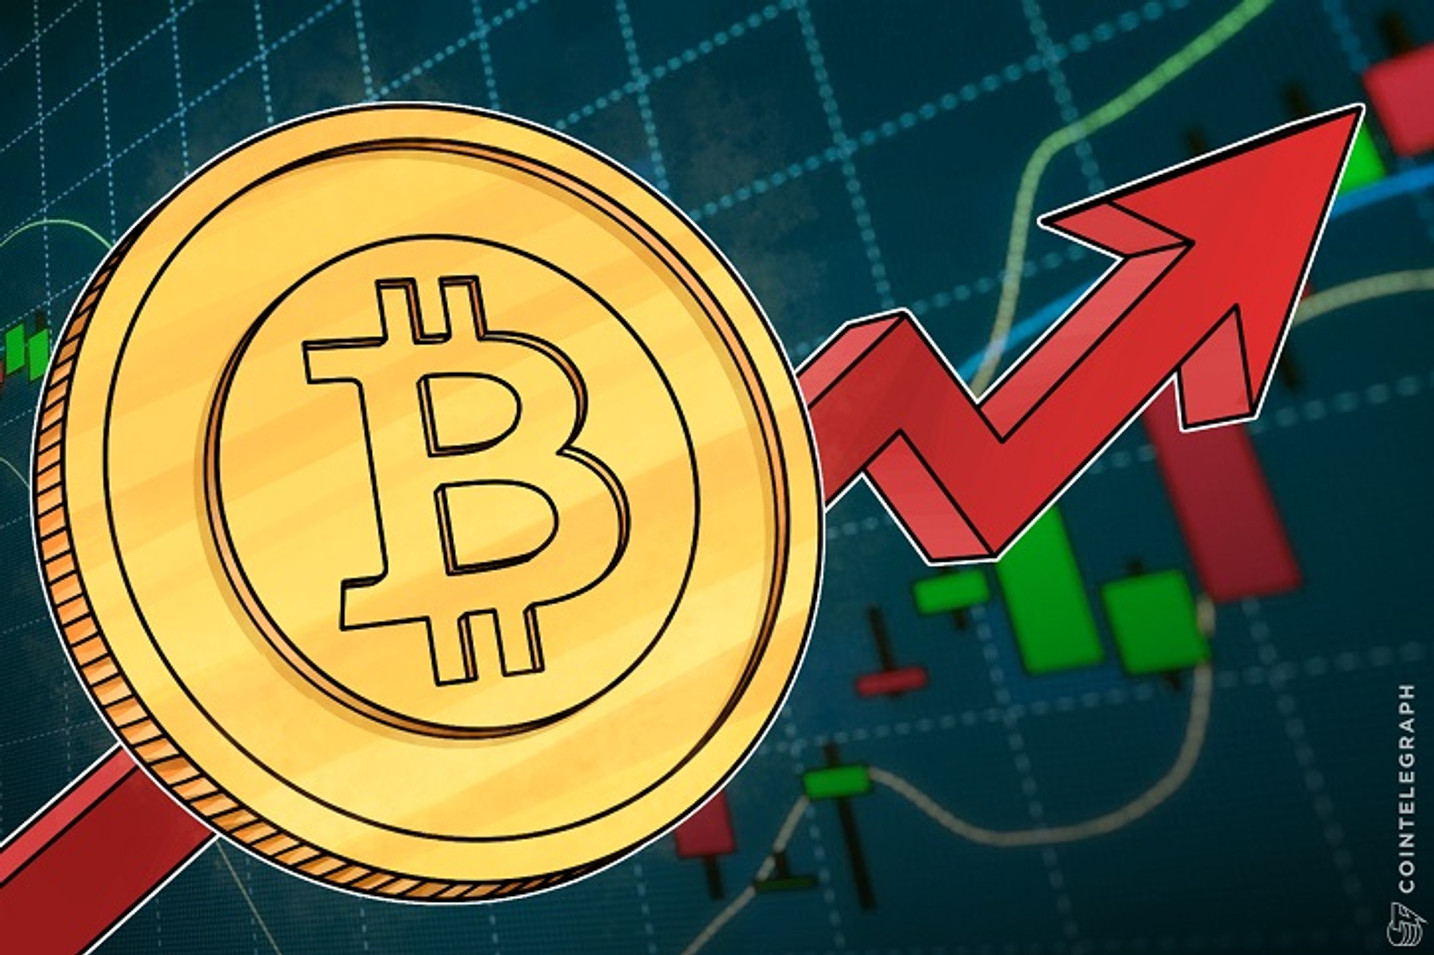 Bitcoin Rises Seven Percent In 24 Hours, May Start Rallying $1 bln Market Cap Per Day